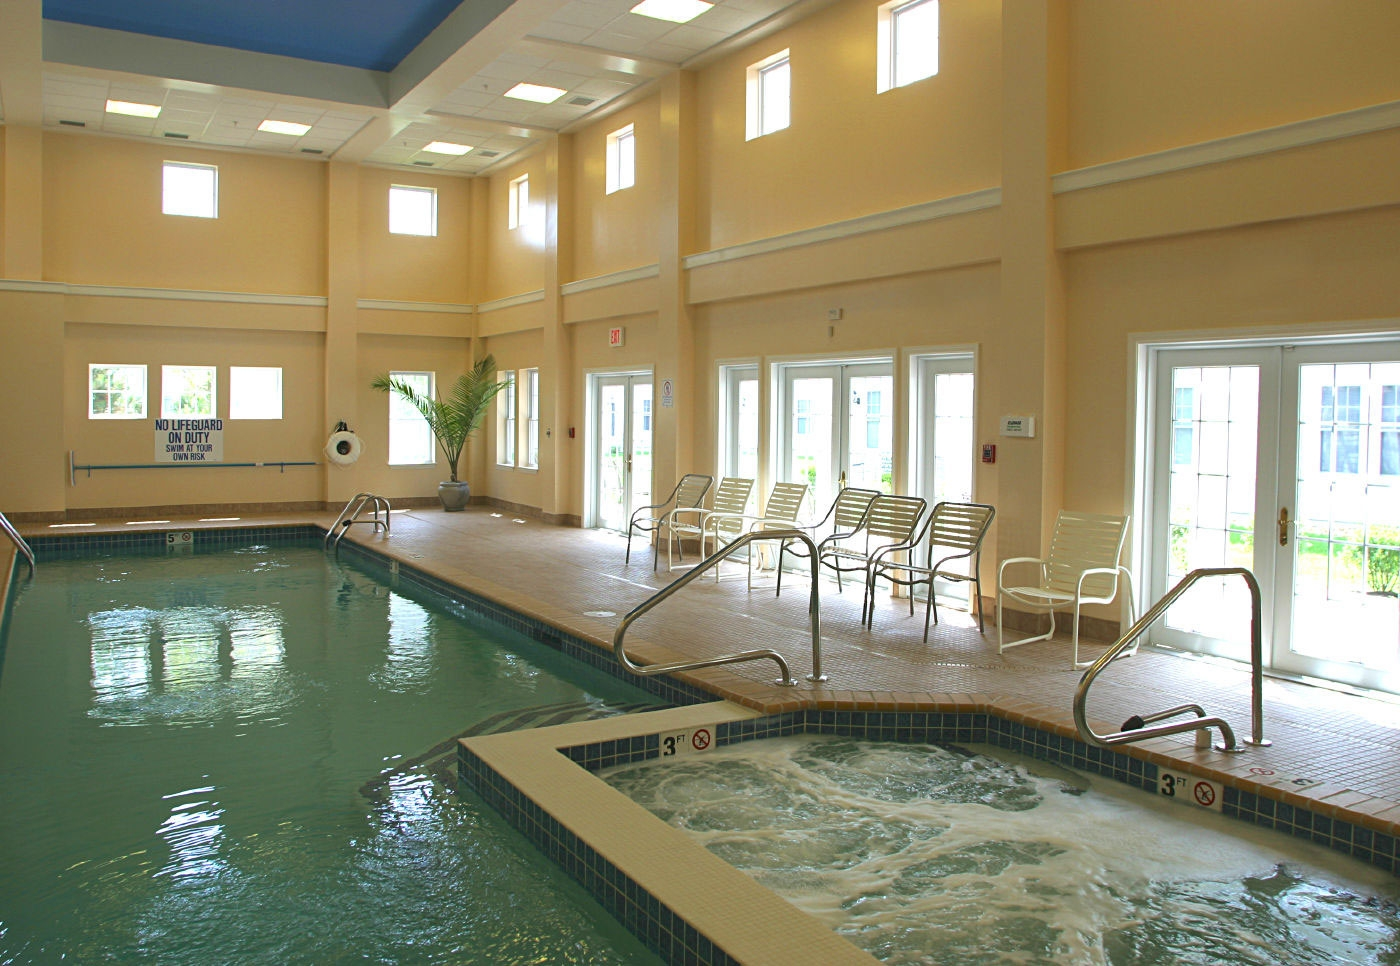 Interior design of the pool area for active seniors living in this CCRC